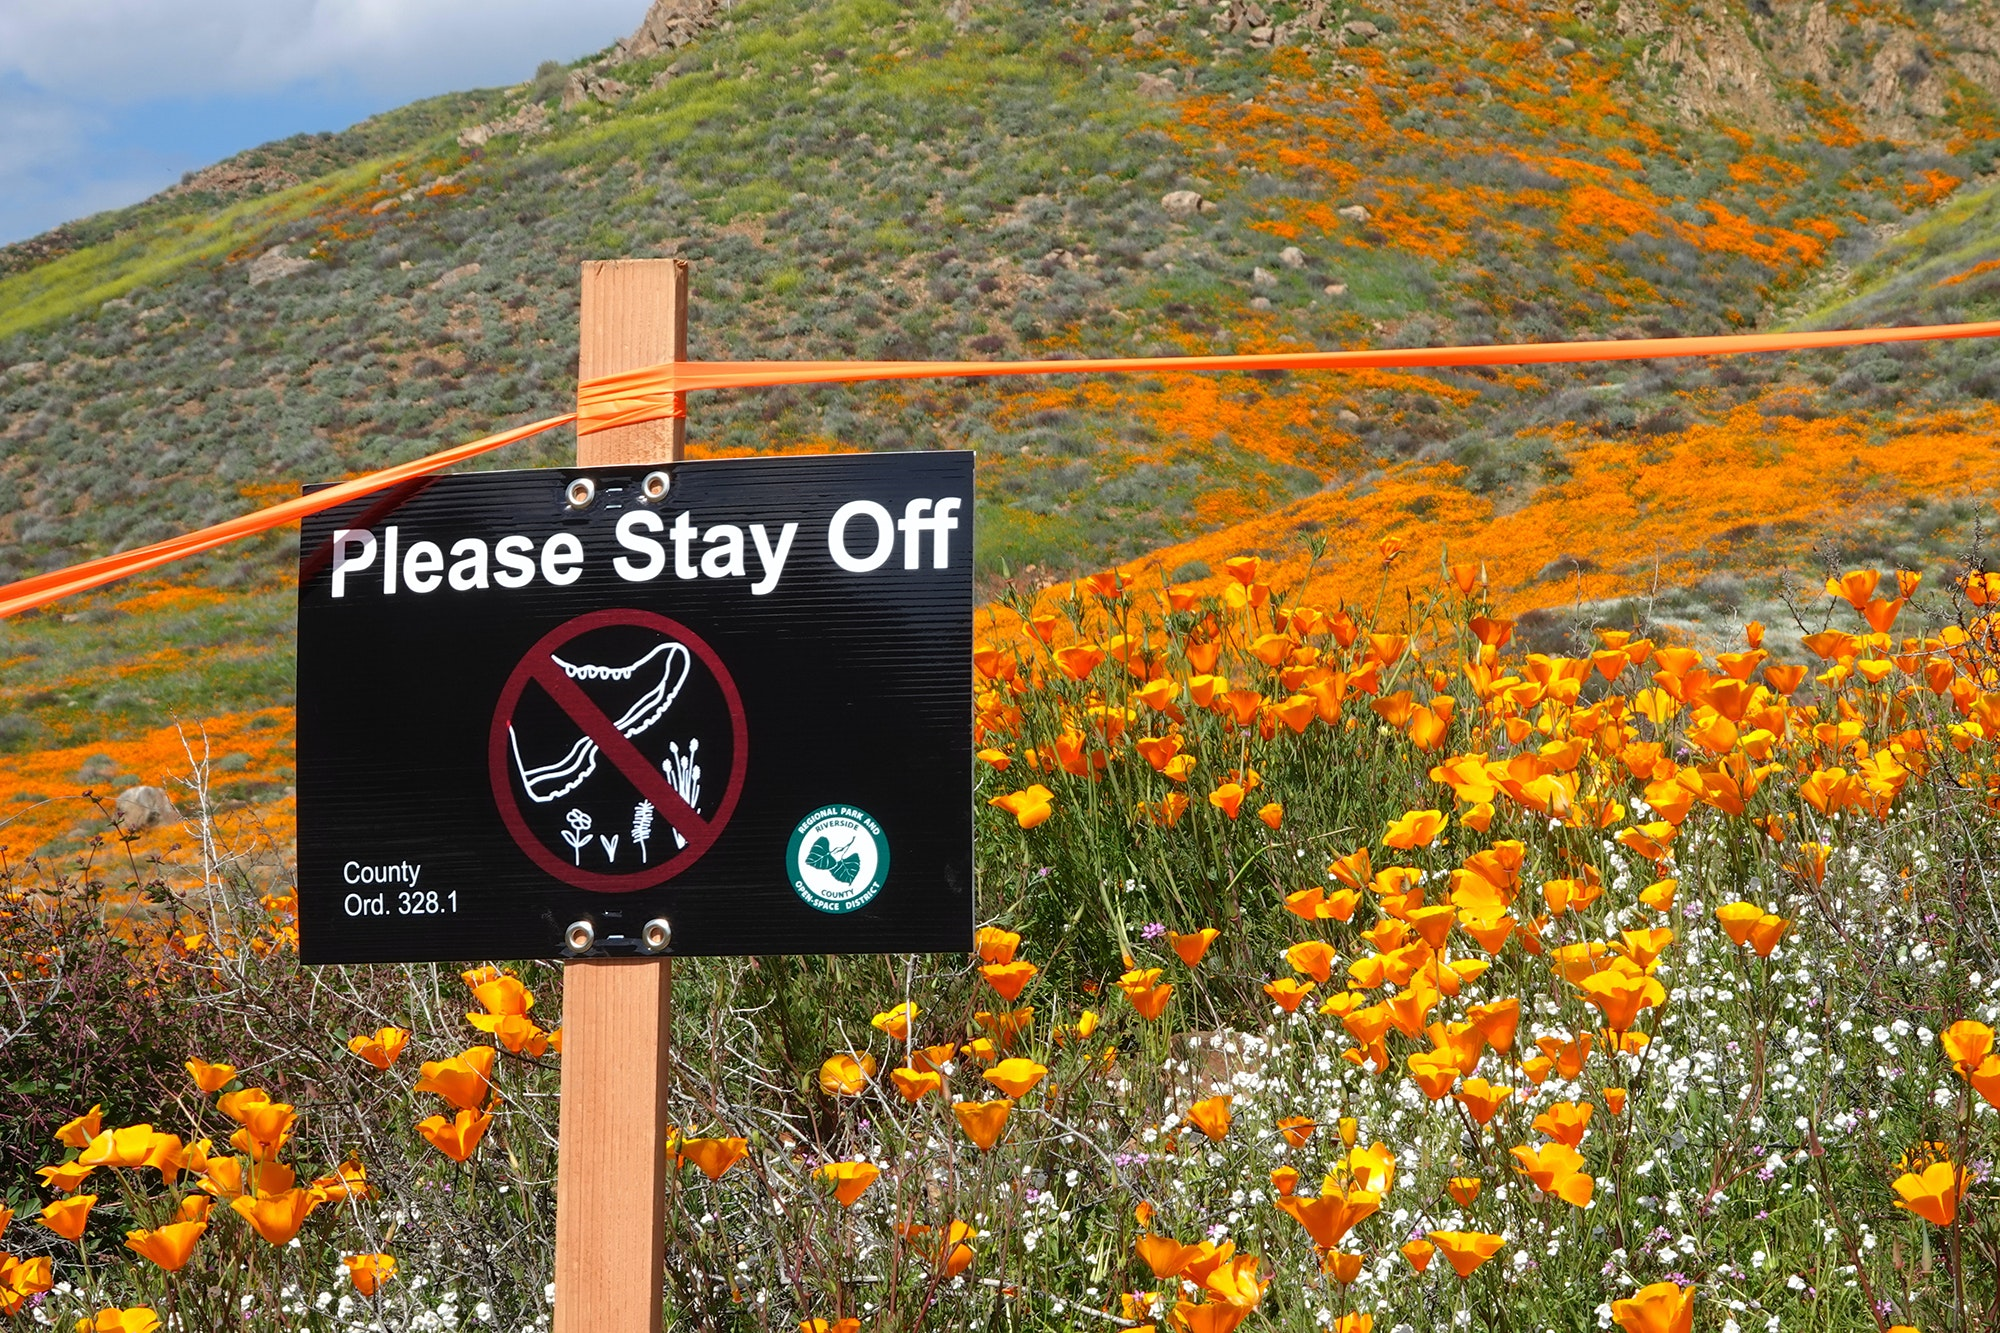 Despite signs, many super bloom fans have ignored warnings to stay out of the poppy fields.